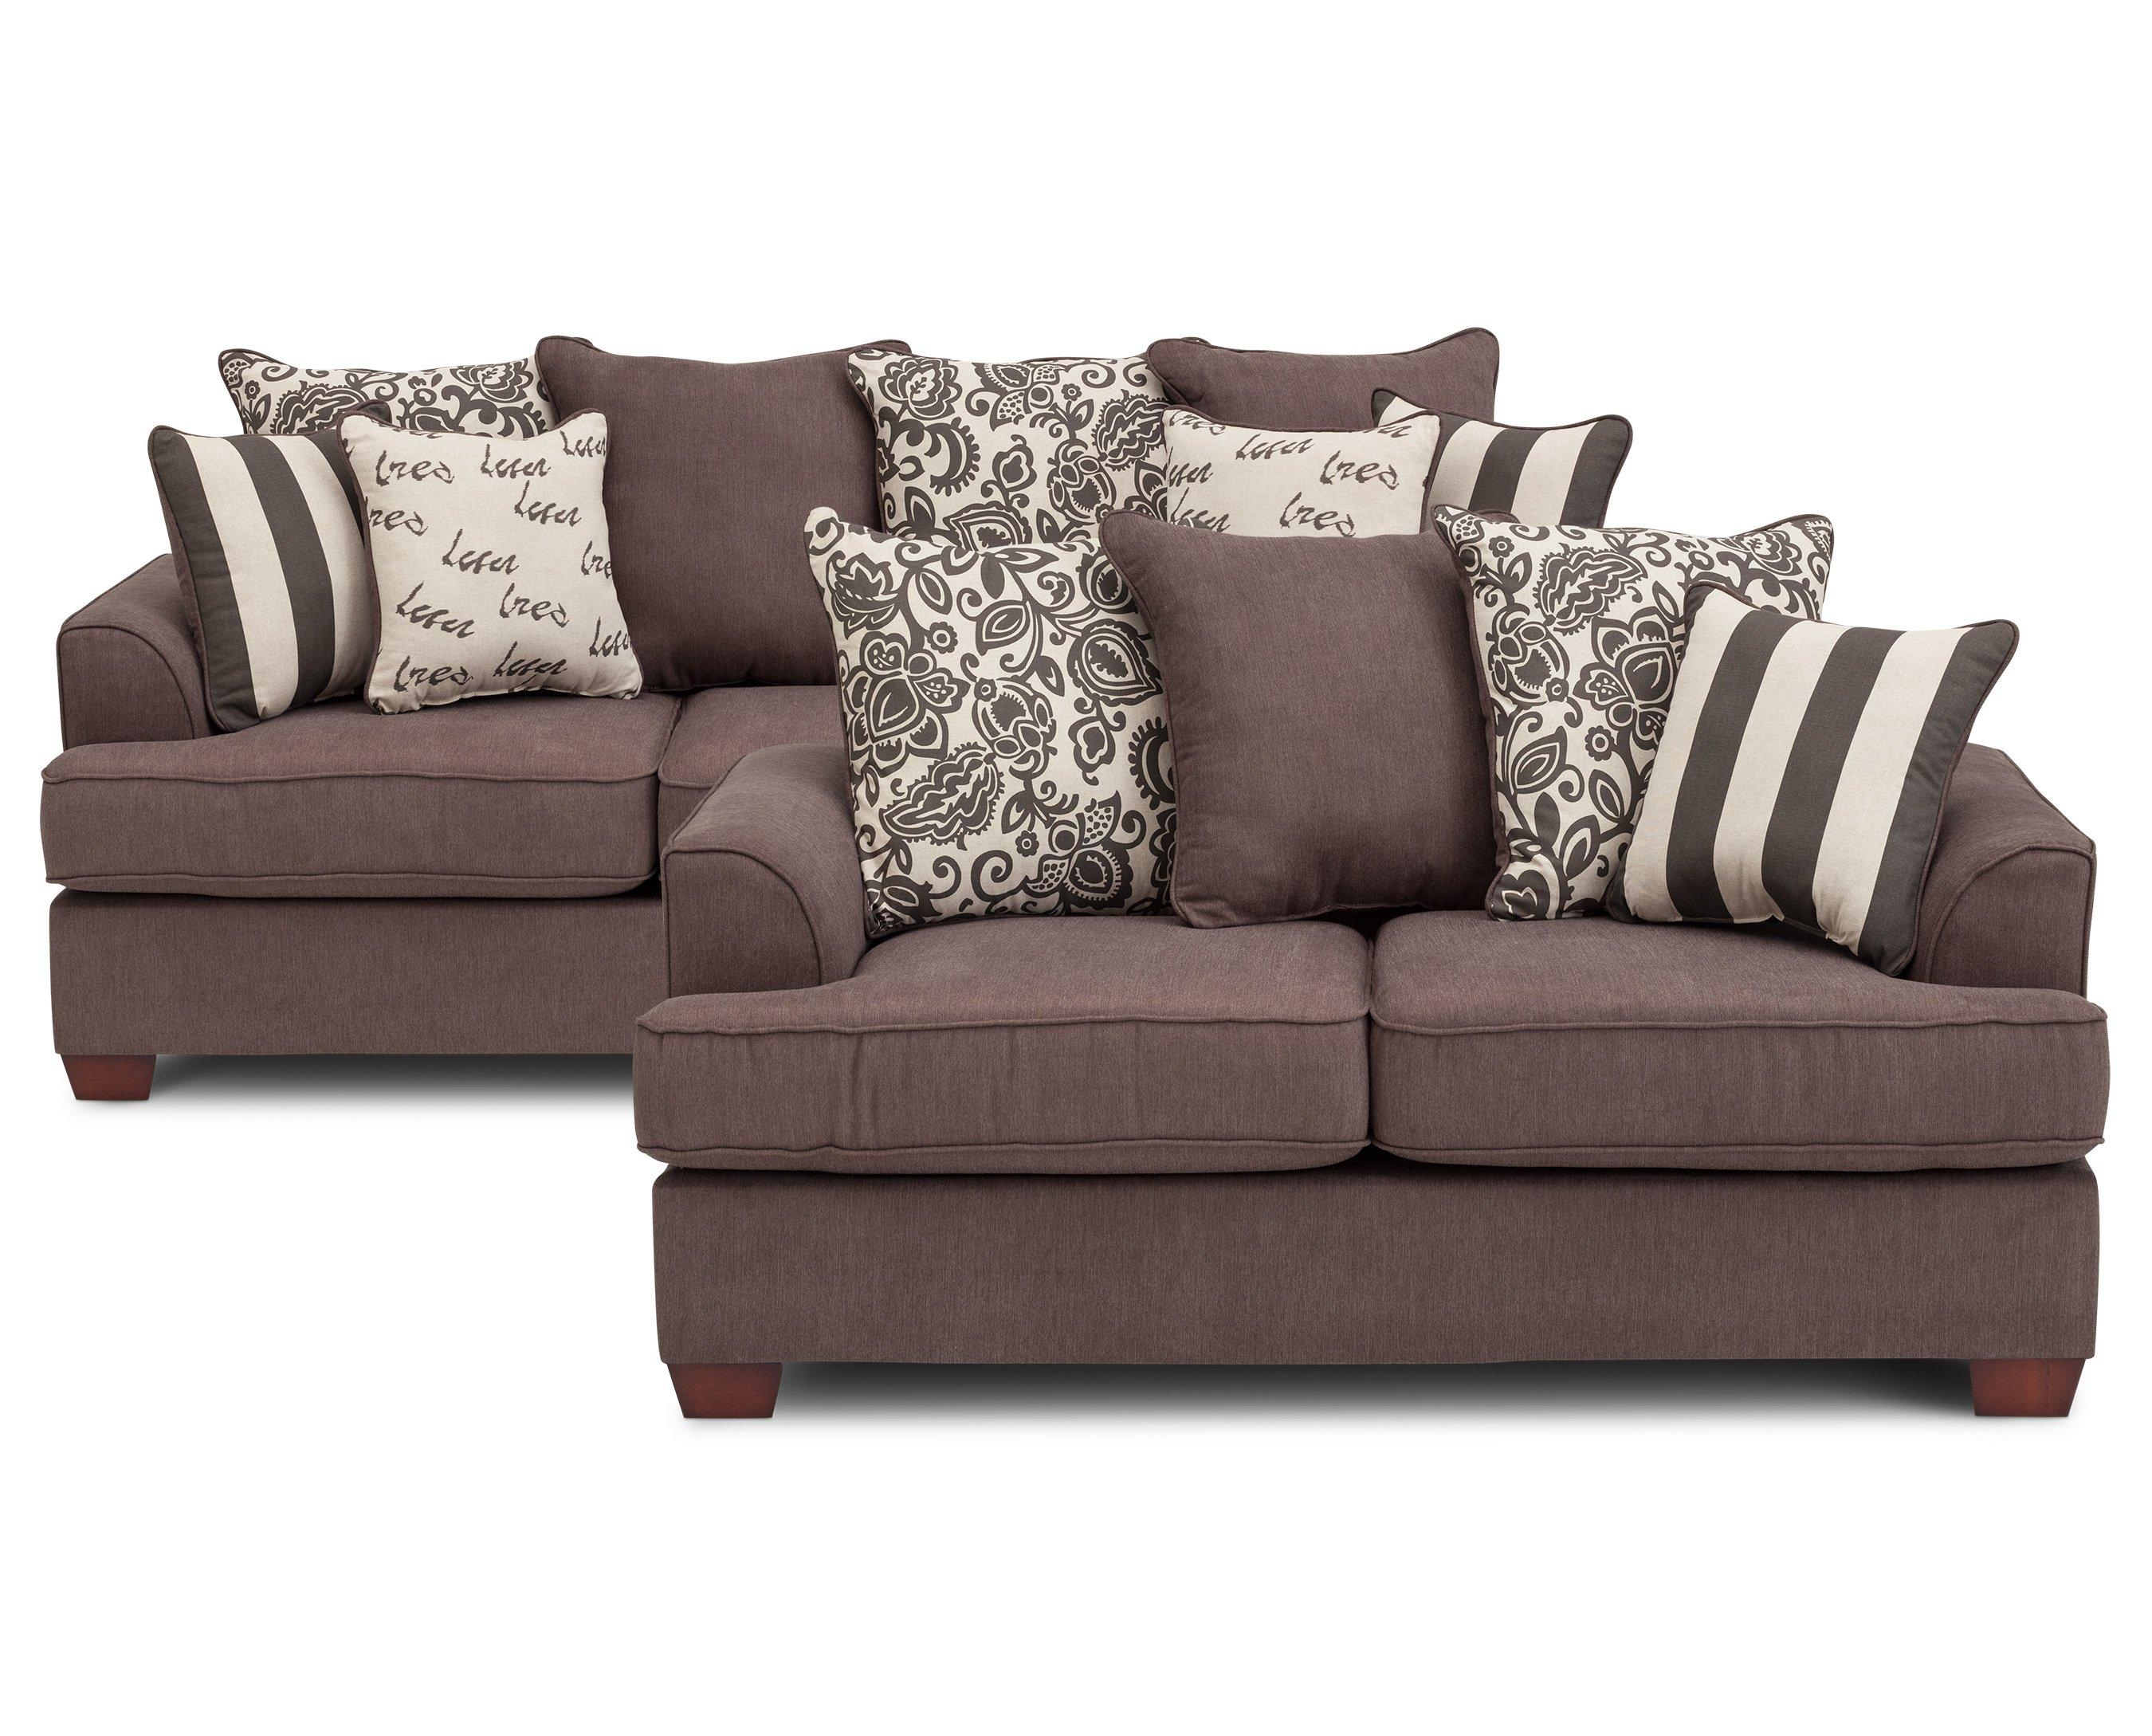 Aberdeen Sofa – Furniture Row With Regard To Sofa Mart Chairs (View 6 of 20)